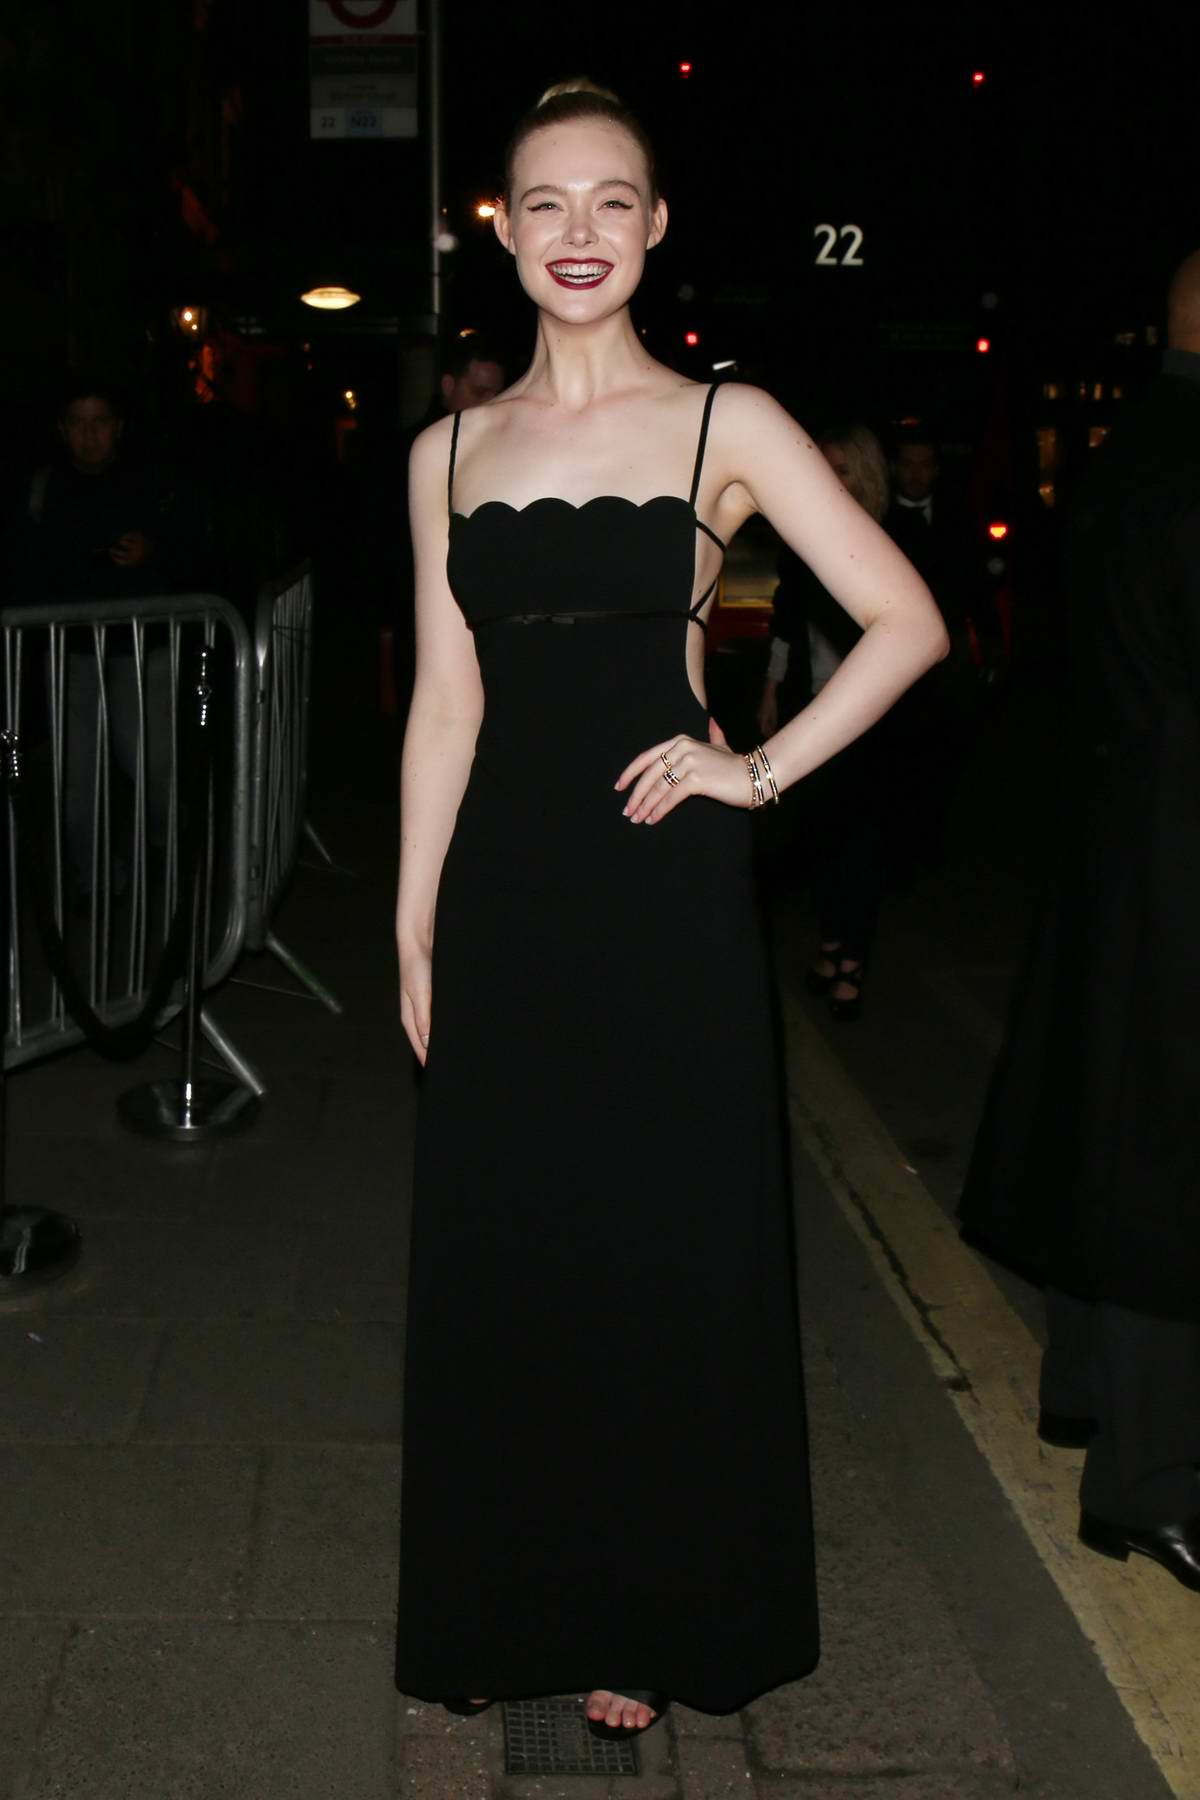 Elle Fanning attend the Vogue x Tiffany & Co BAFTA after-party, held at Annabel's Private Members Club in Mayfair, London